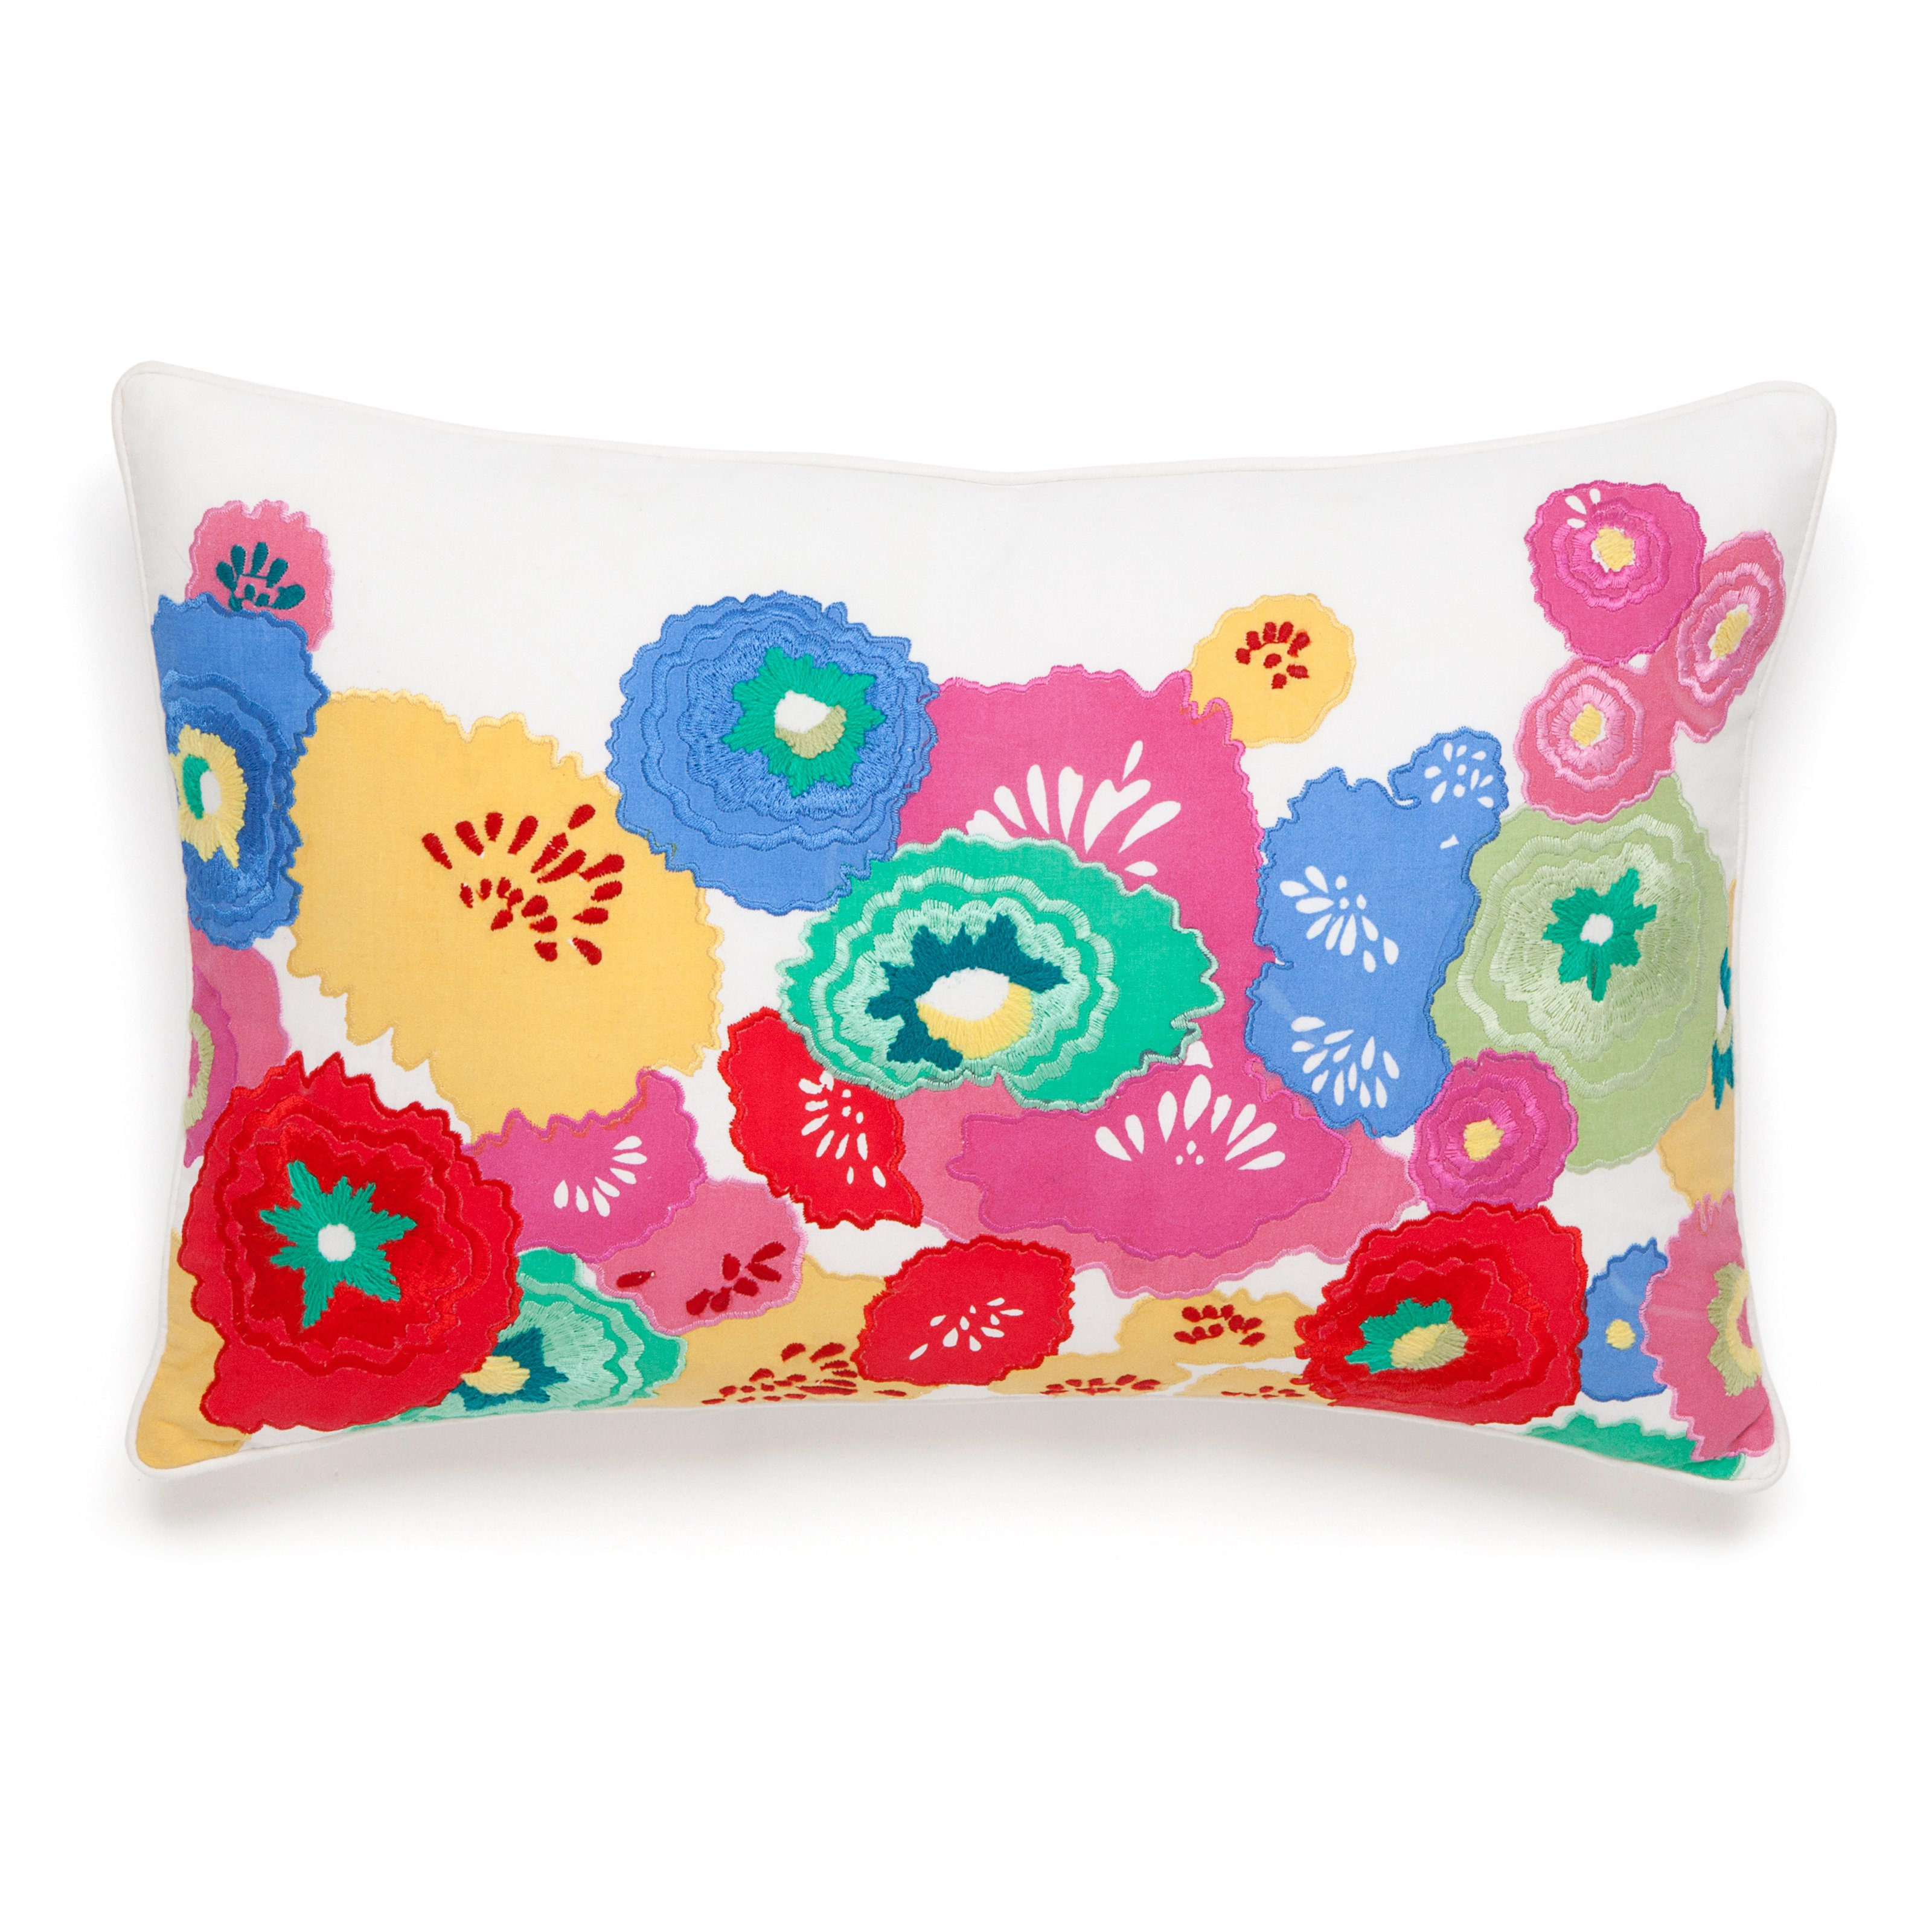 Collier Campbell English Bloom Floral Embroidered Decorative Cotton Lumbar Pillow